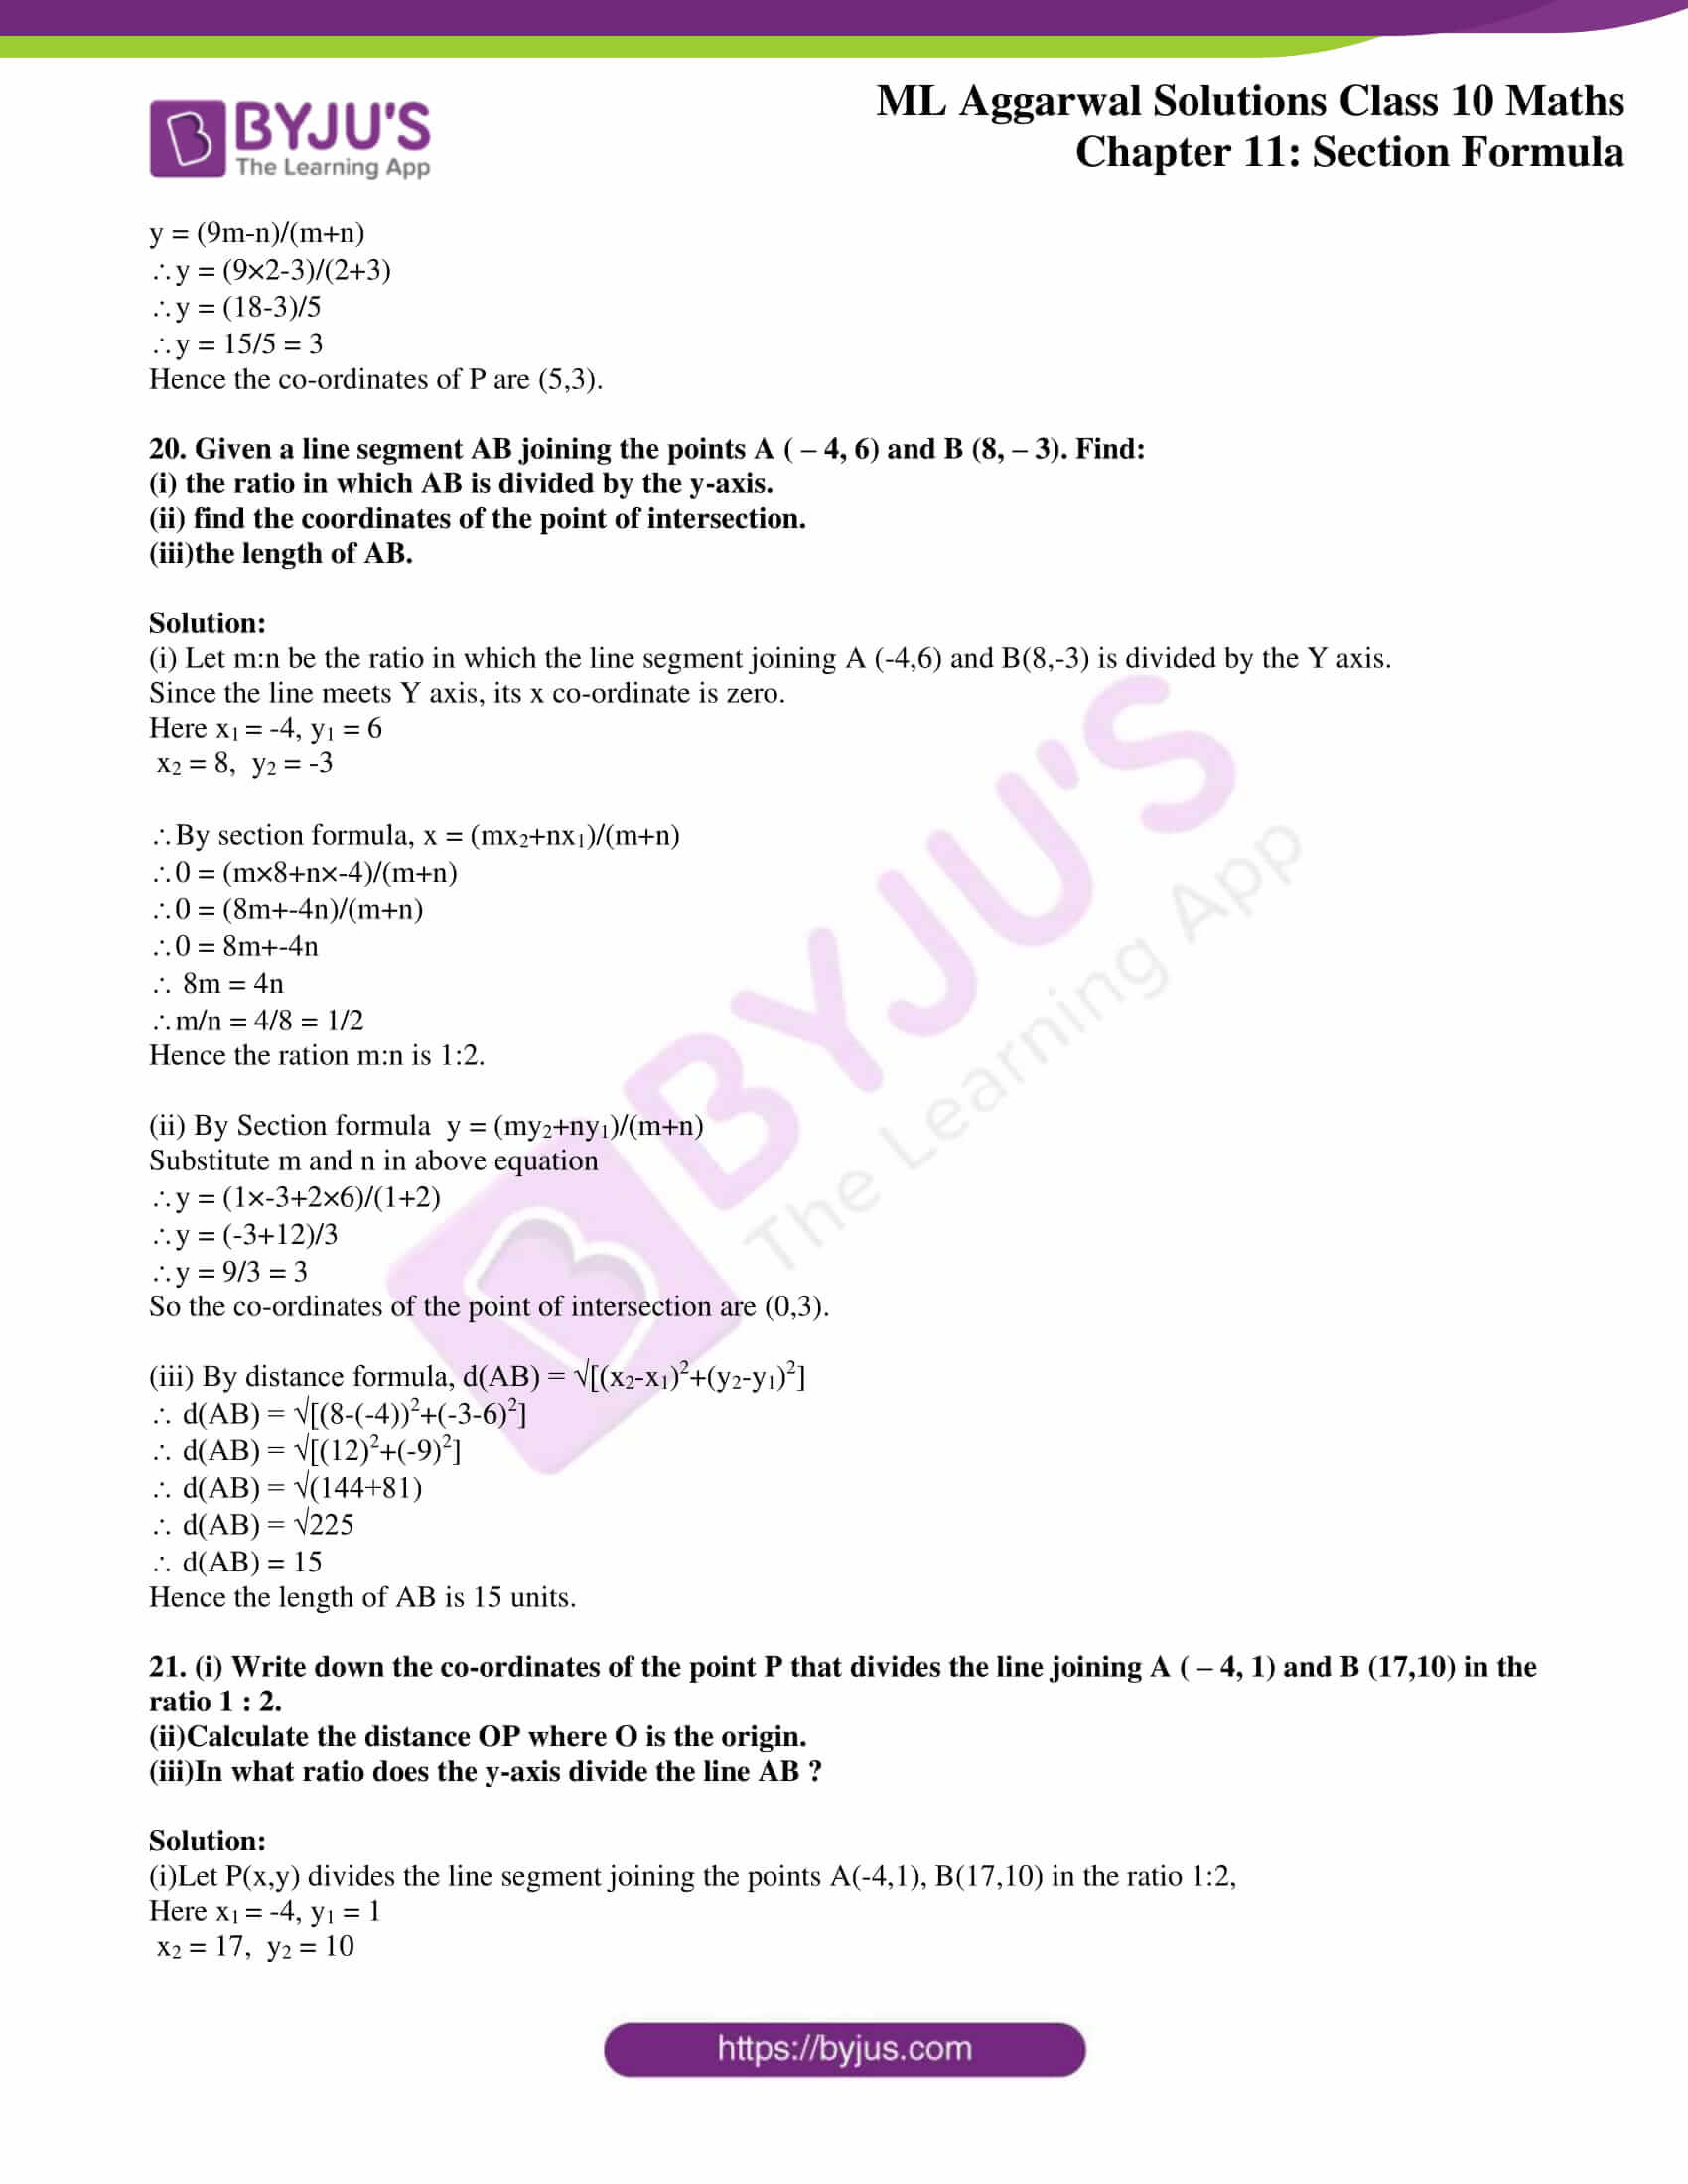 ml aggarwal solutions class 10 maths chapter 11 15